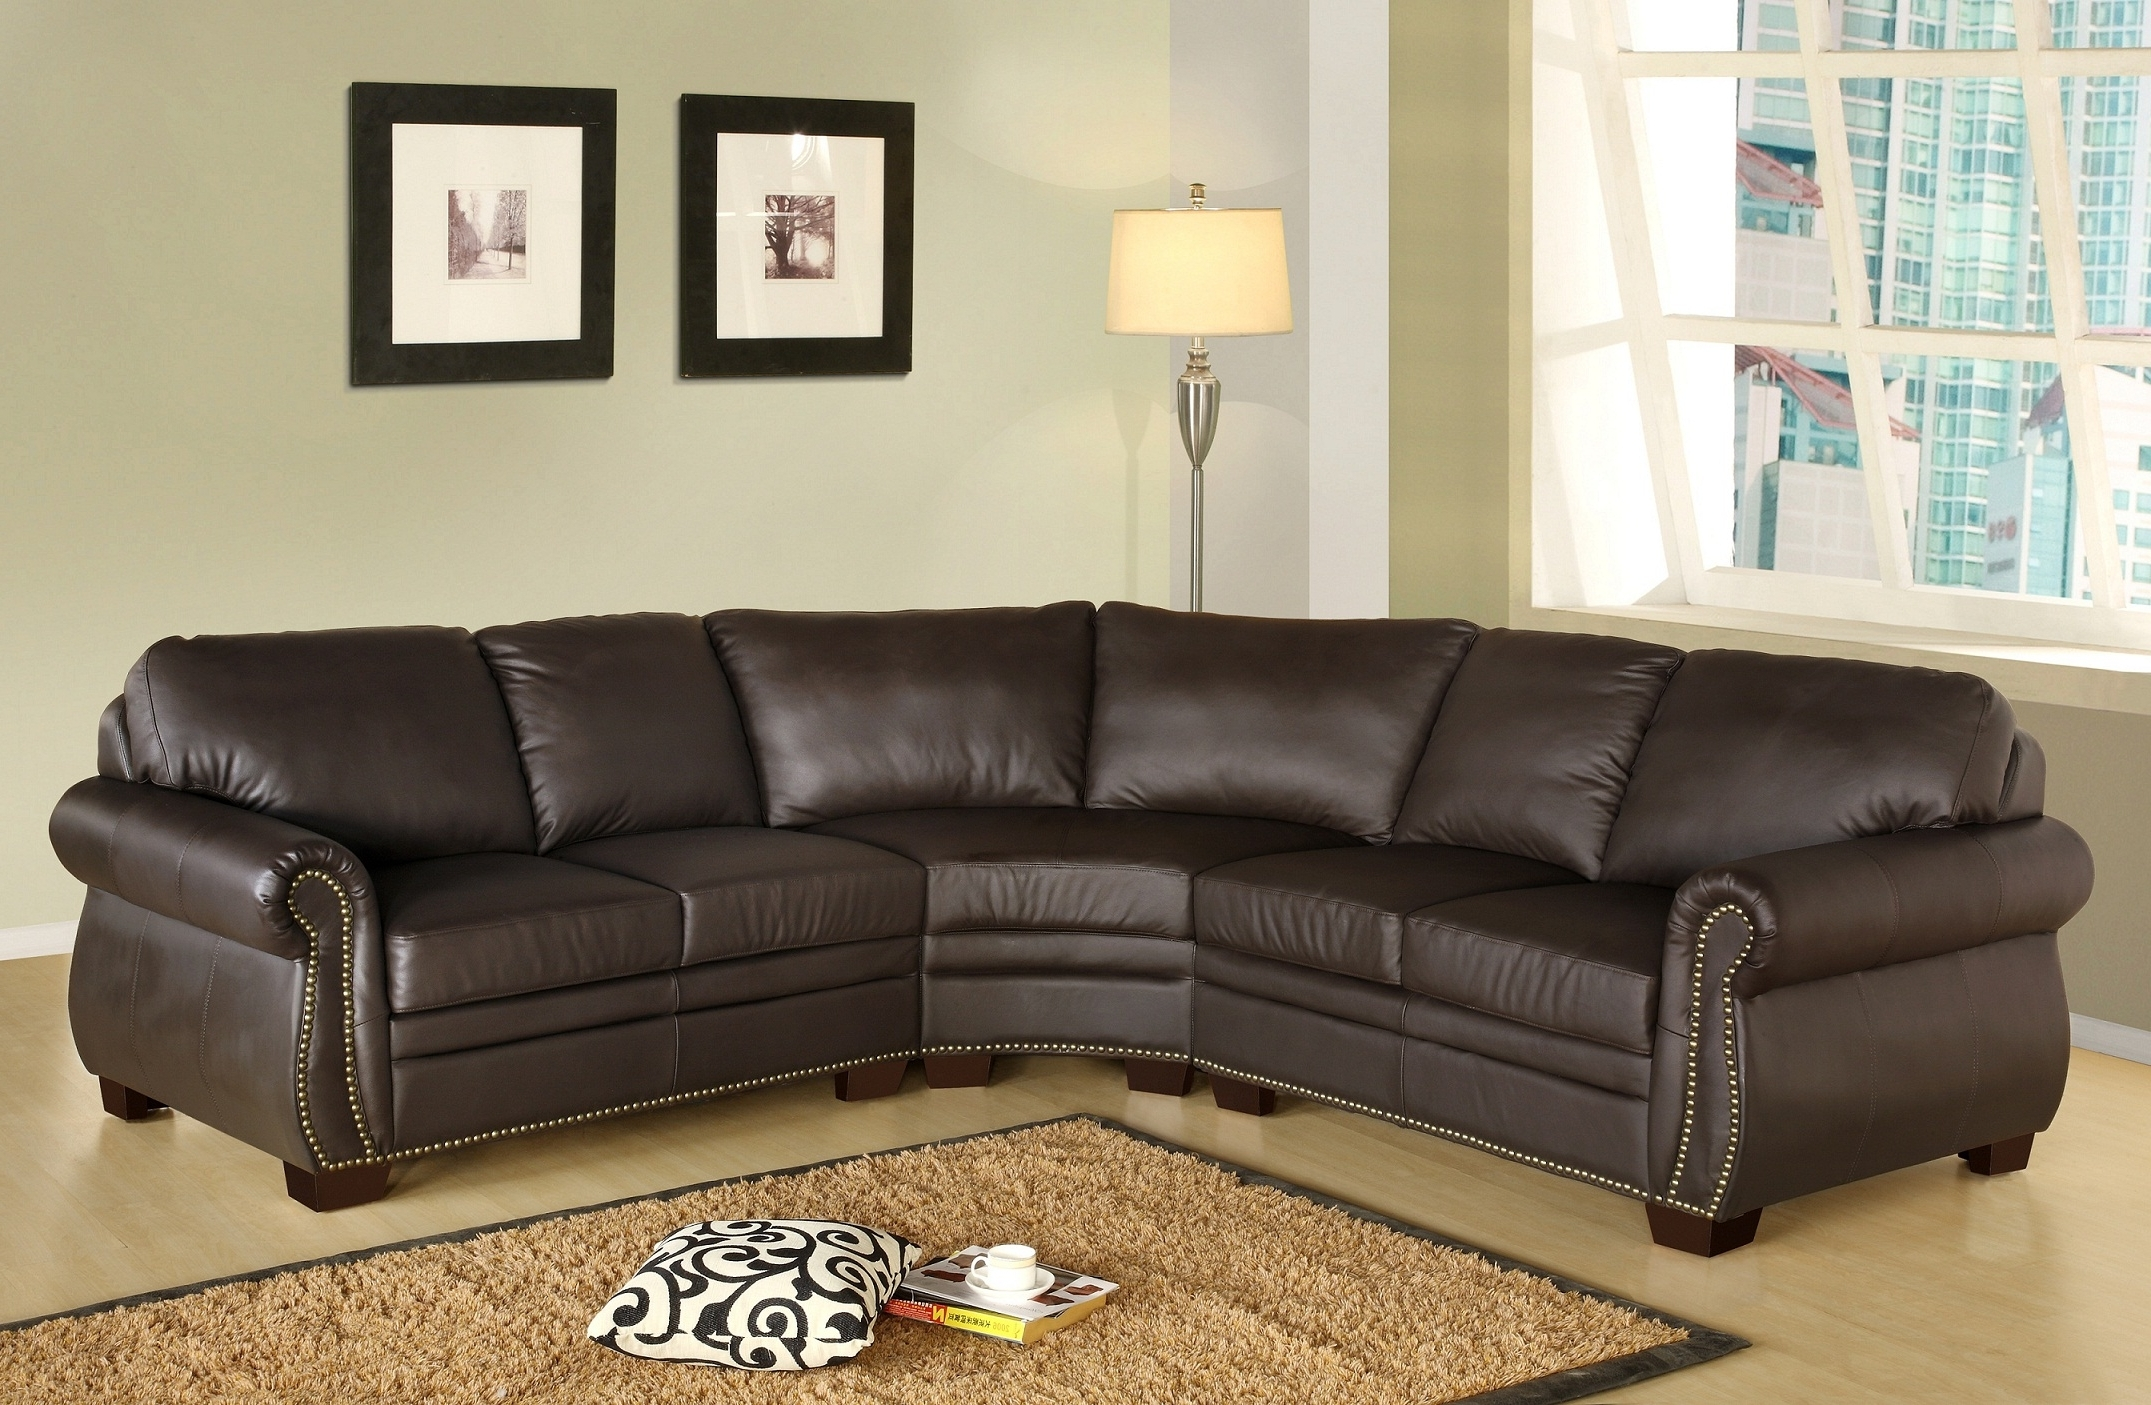 Overstock Credit Card Sectional Couch Ikea Wayfair Coupon Ethan Intended For Popular Abbyson Sectional Sofas (View 14 of 15)